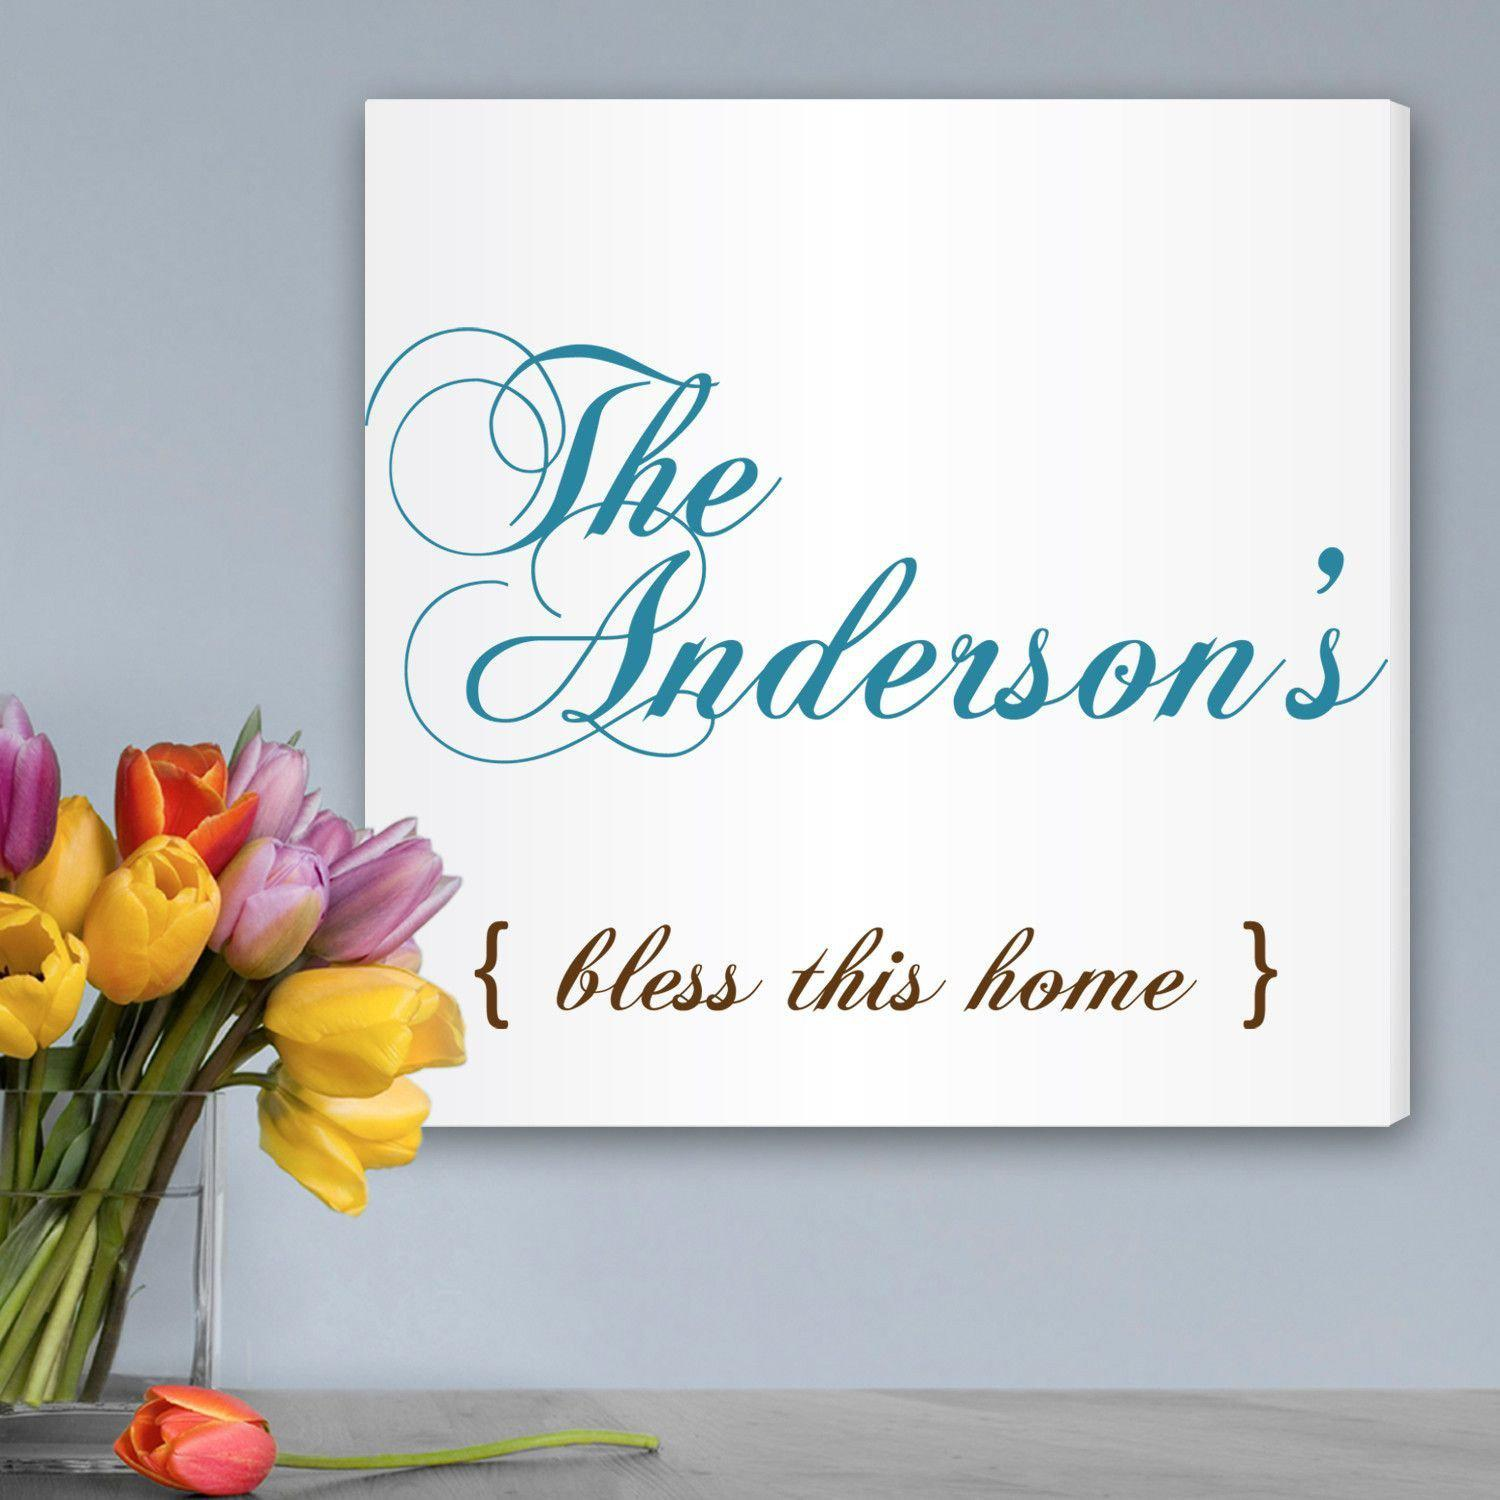 Personalized-Bless-This-Home-Canvas-Sign